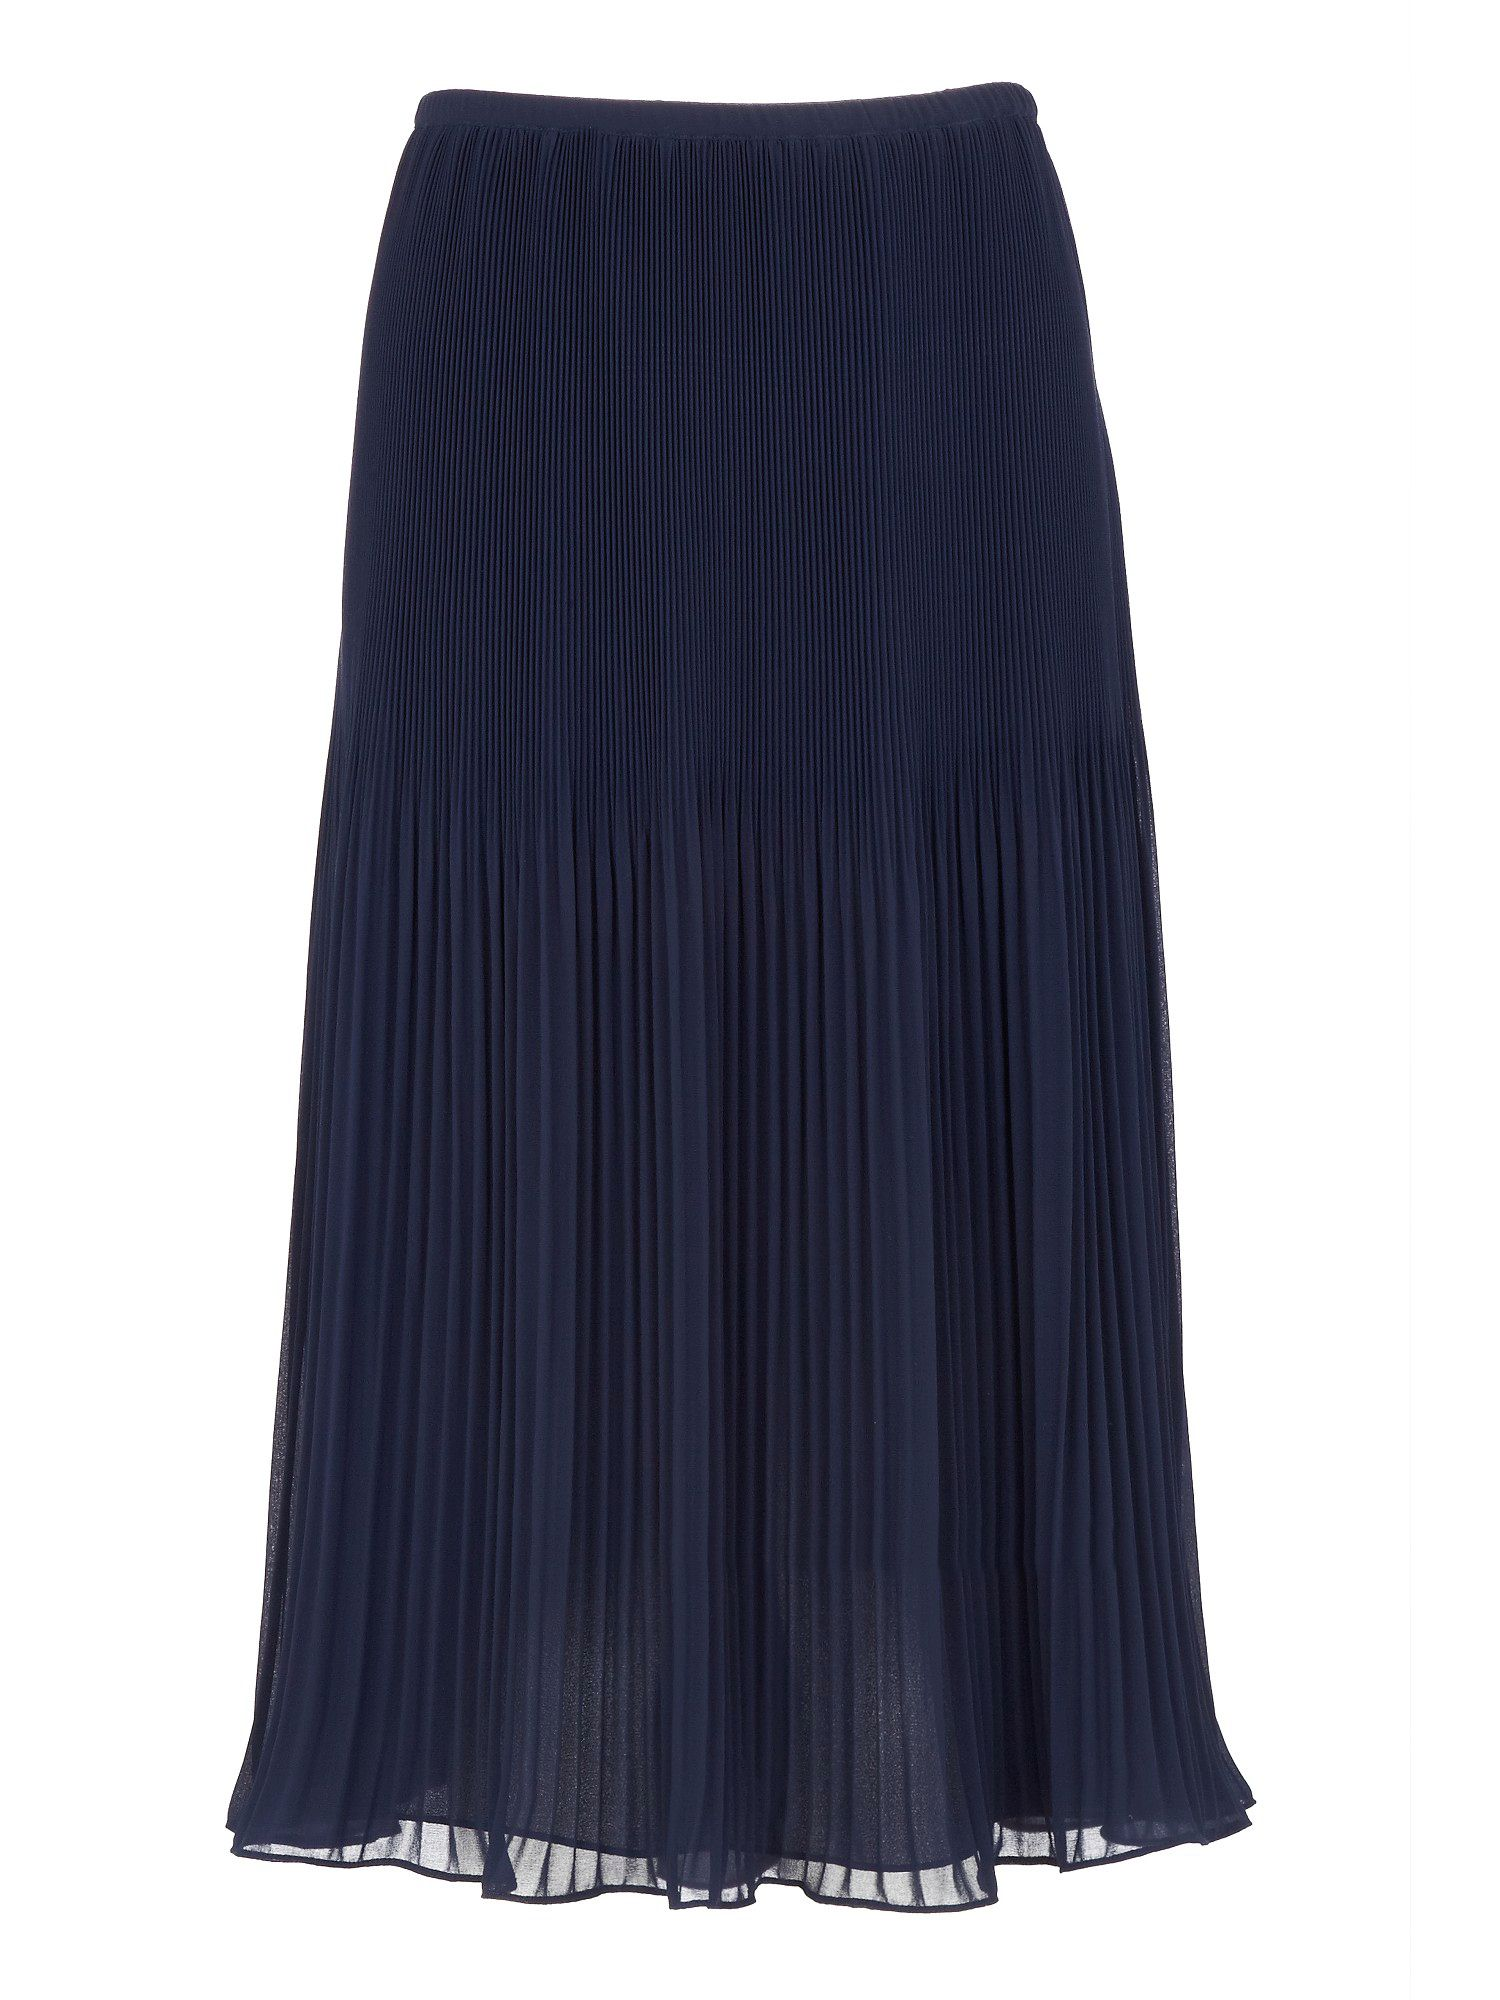 Navy pleated chiffon skirt